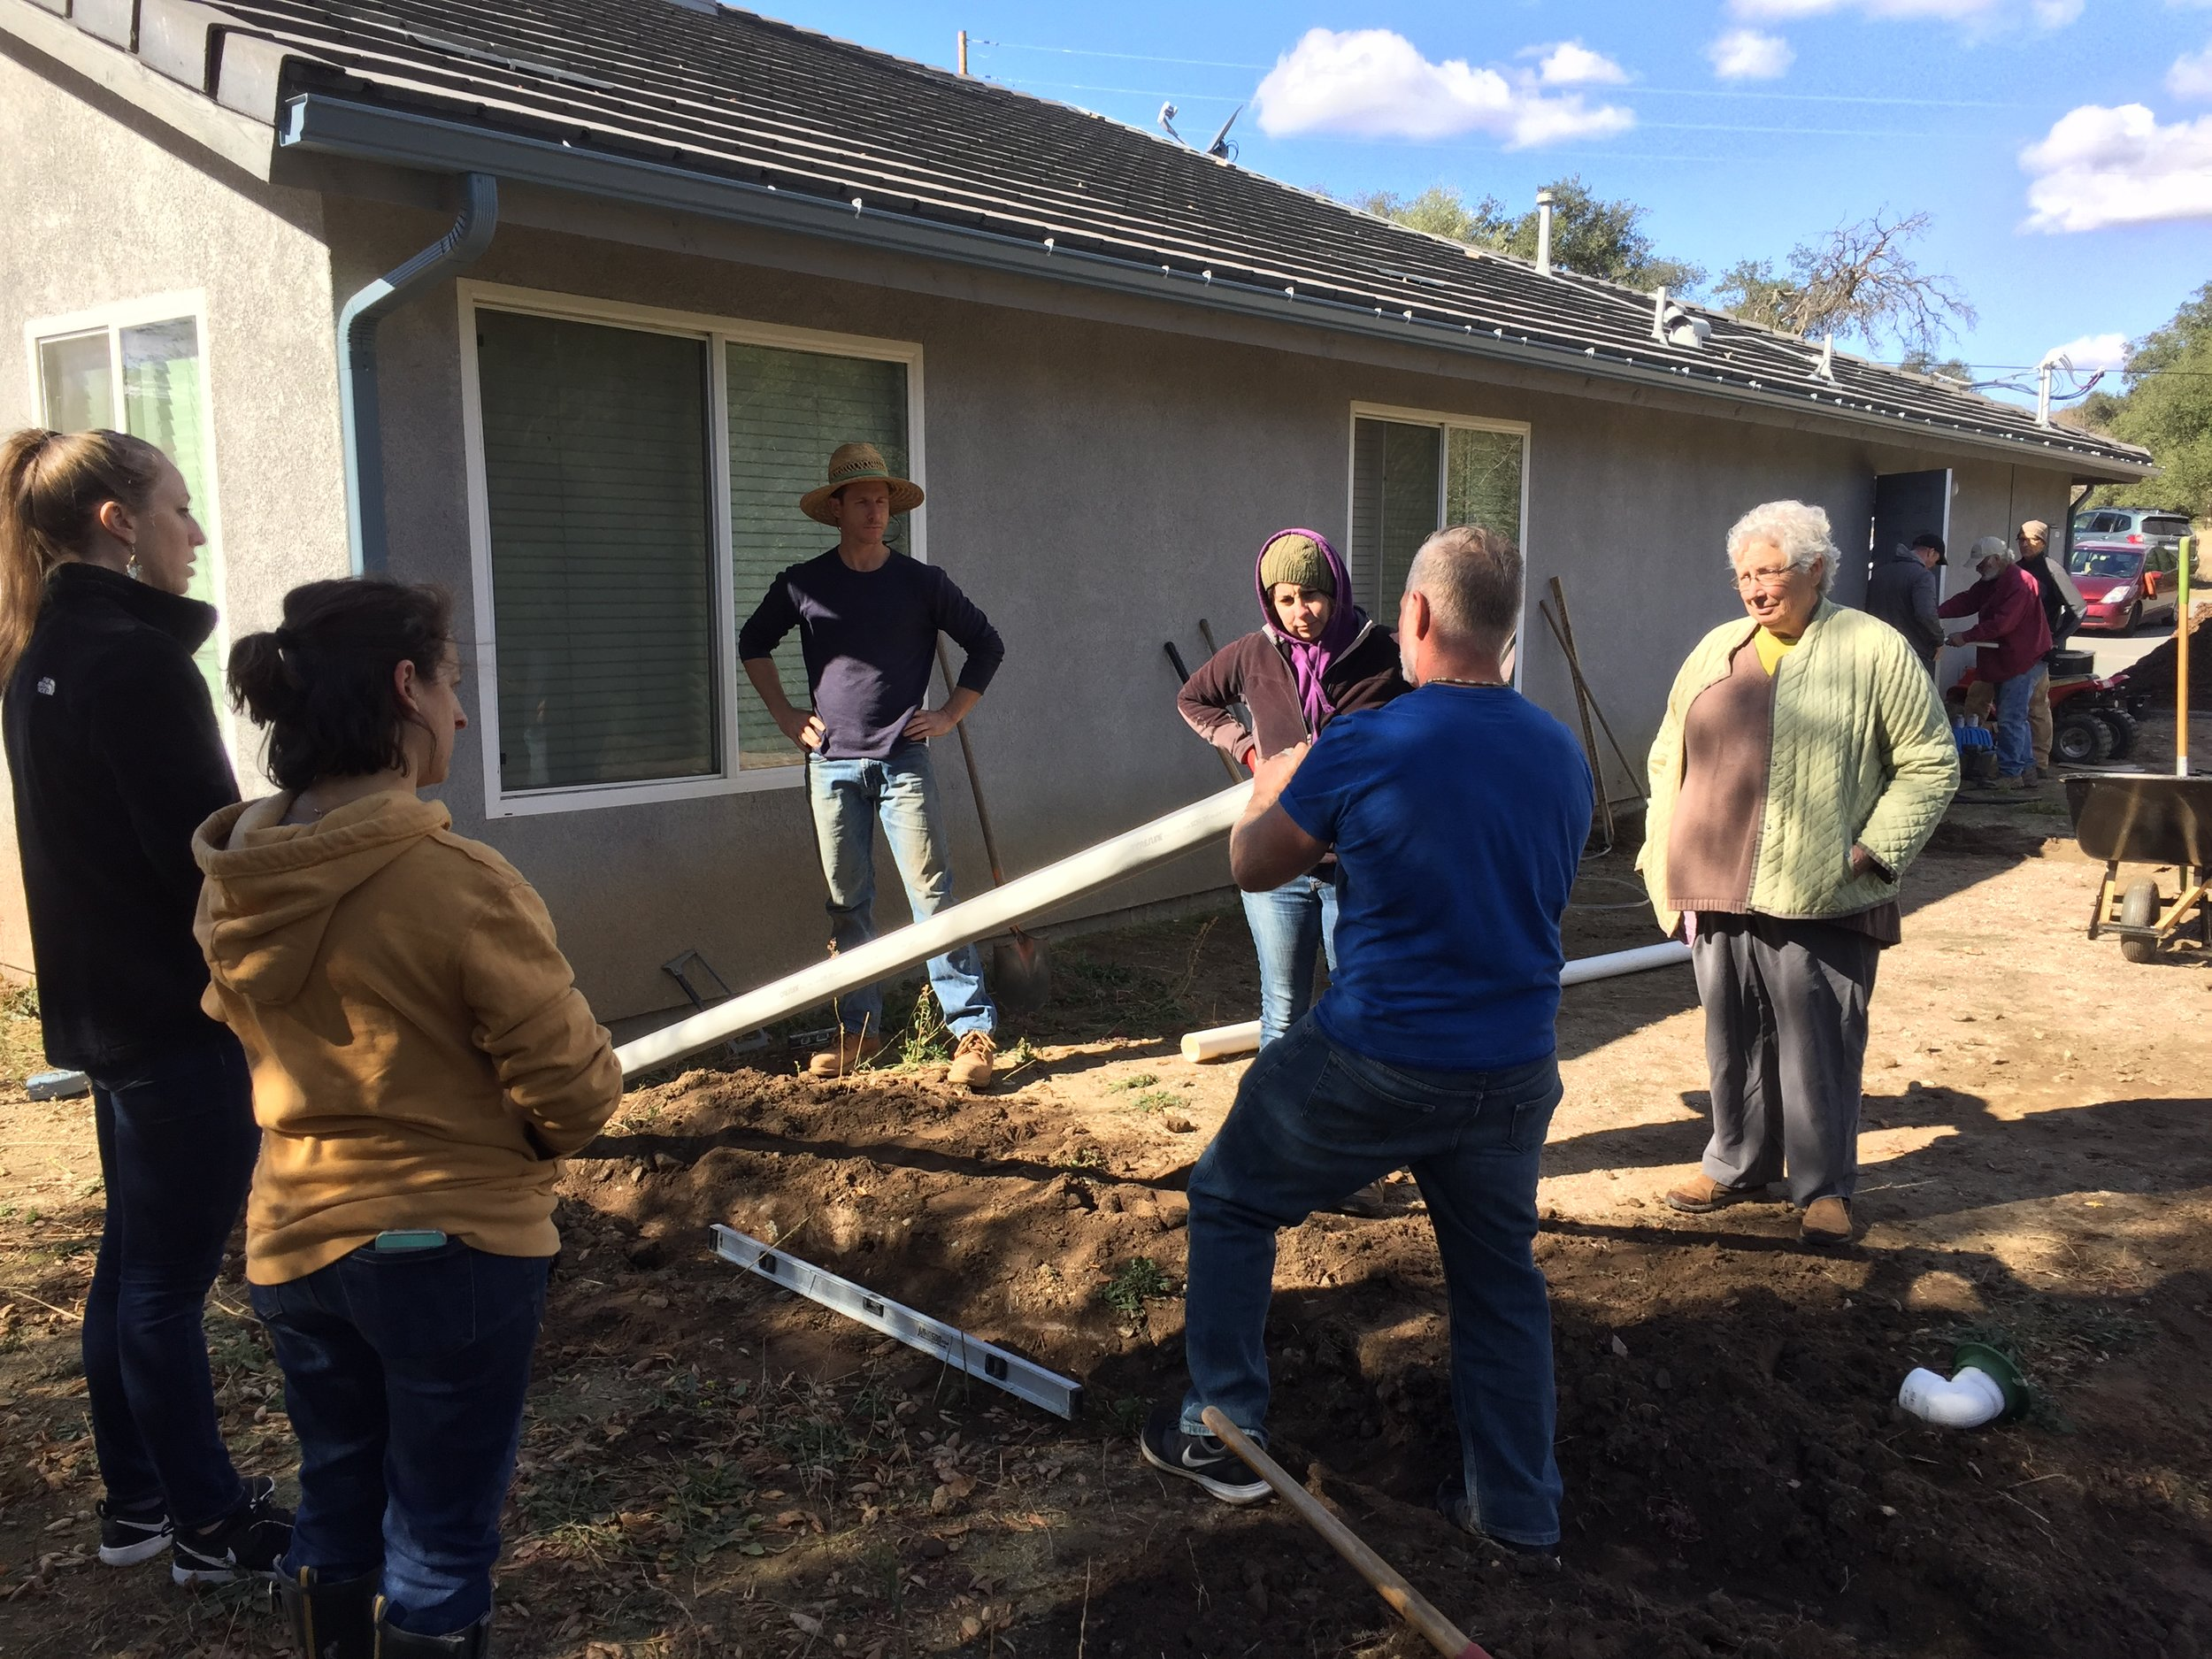 Working together to reroute rainwater downspout into laundry greywater basin